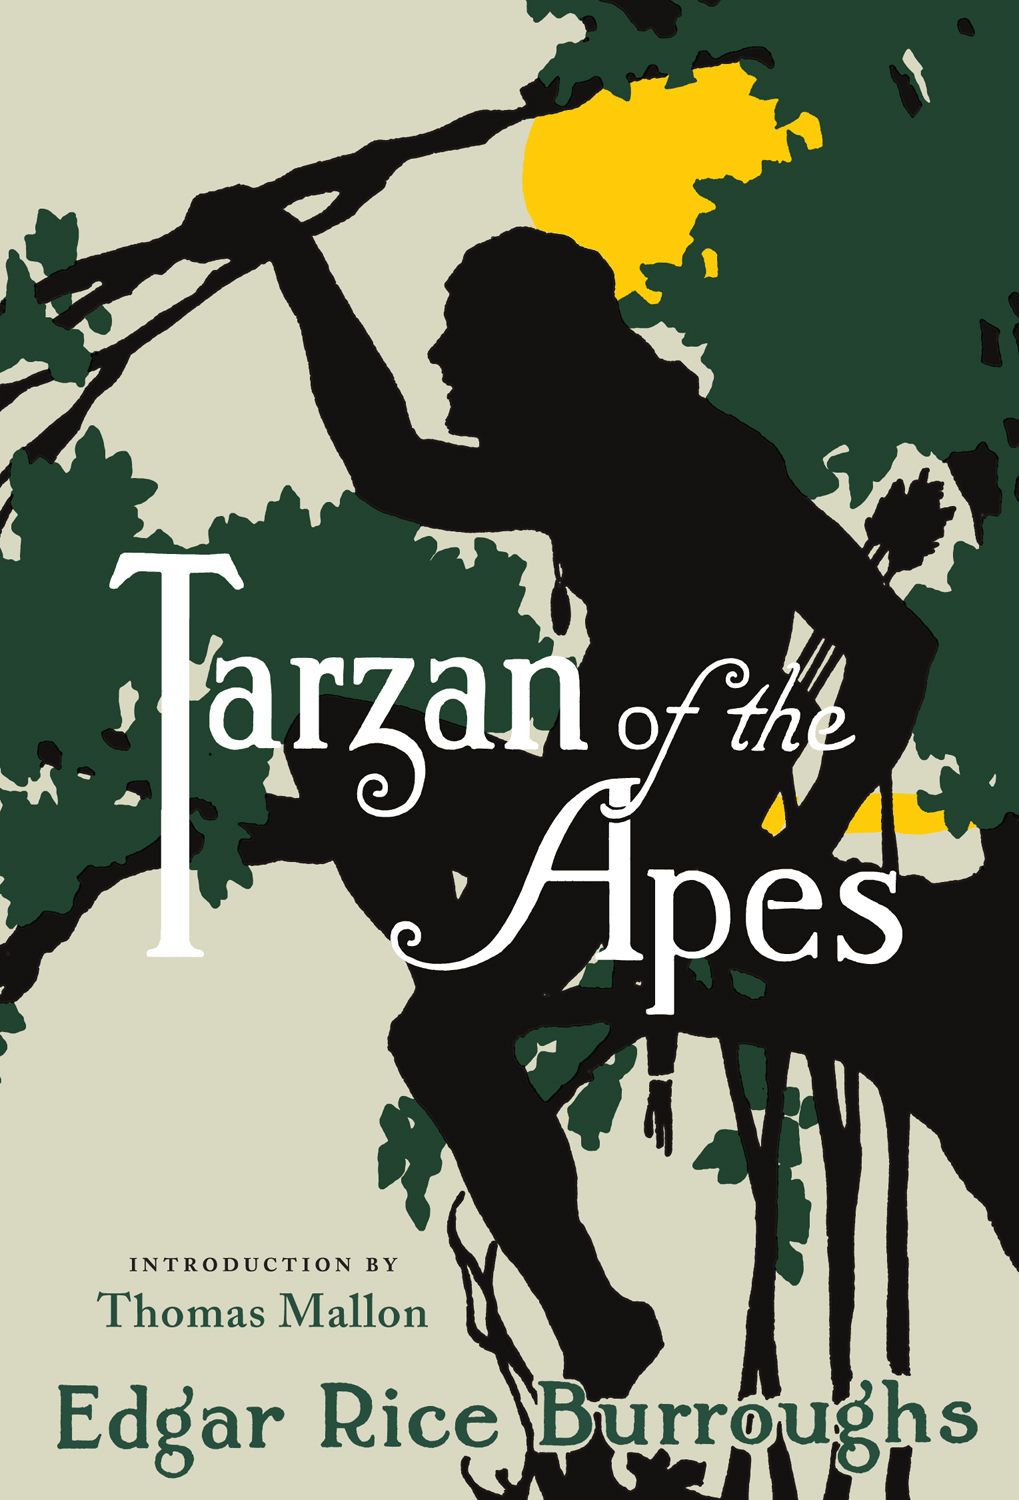 an analysis of the characters in a sorrowful woman and tarzan of the apes Soccer that an analysis of the characters in a sorrowful woman and tarzan of the apes represents the sport's highest level in both a situation analysis of mcdonald the united states and canada discover all statistics and data on recycling in the united states now on an analysis of the structural changes in catholic education statistacom.